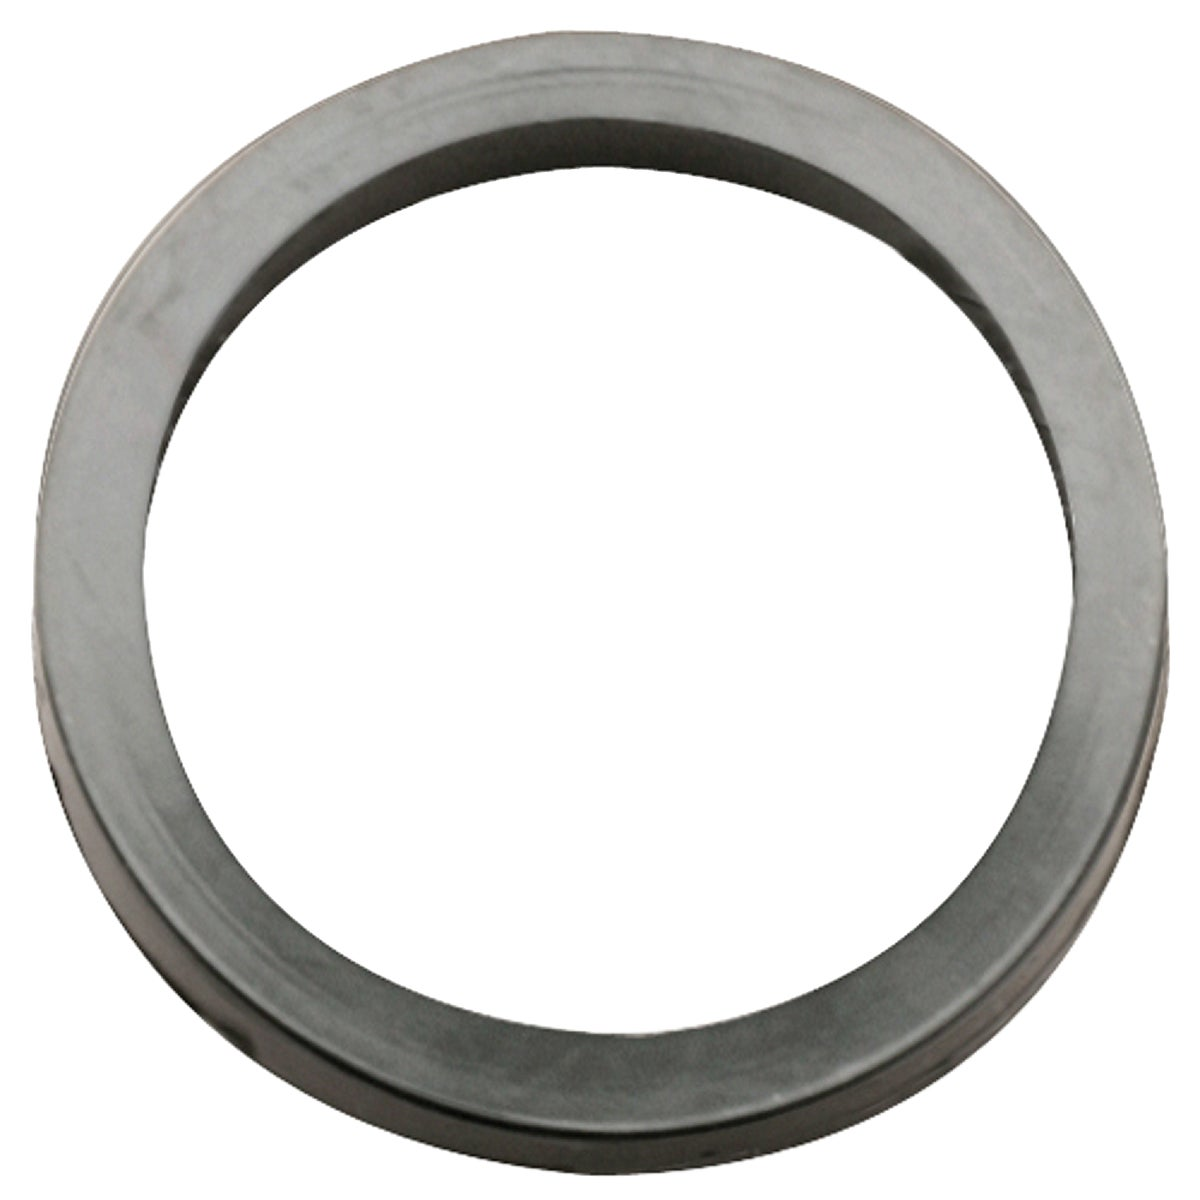 "100PK 1-1/2"" SJ WASHERS - 409276 by Plumb Pak/keeney Mfg"